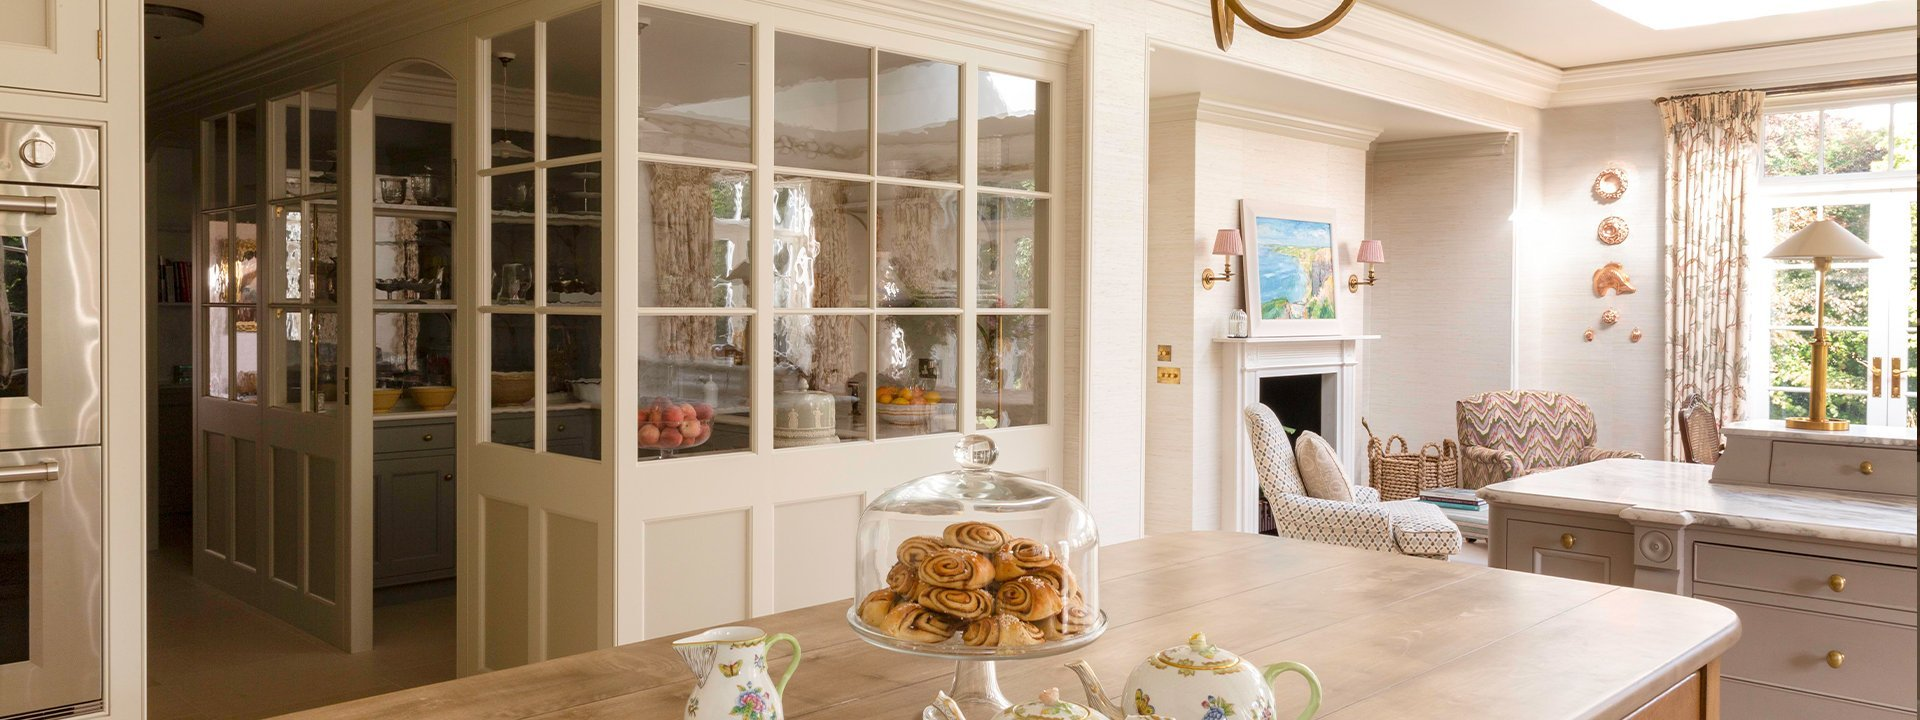 Classic English kitchen design in a Regency house